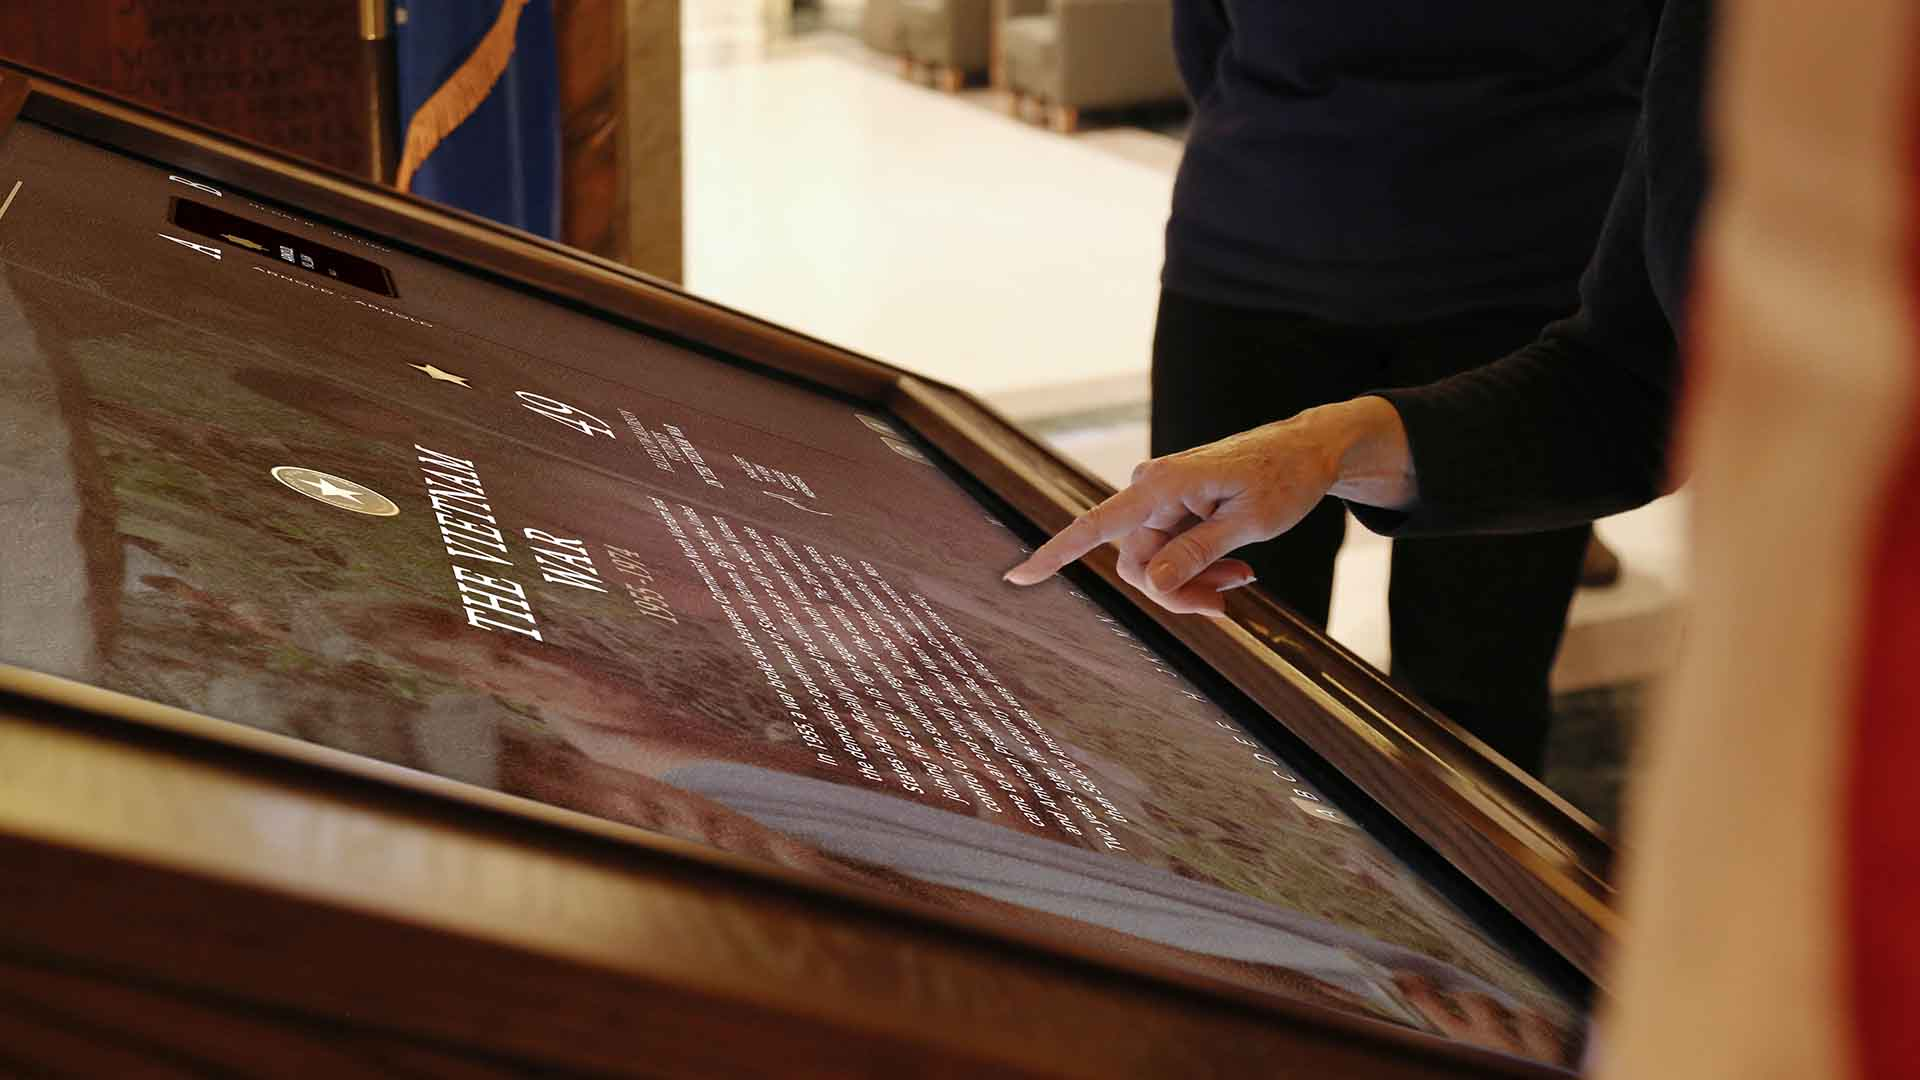 Close up view of woman interacting with UW Gold Star Honor Roll Kiosk